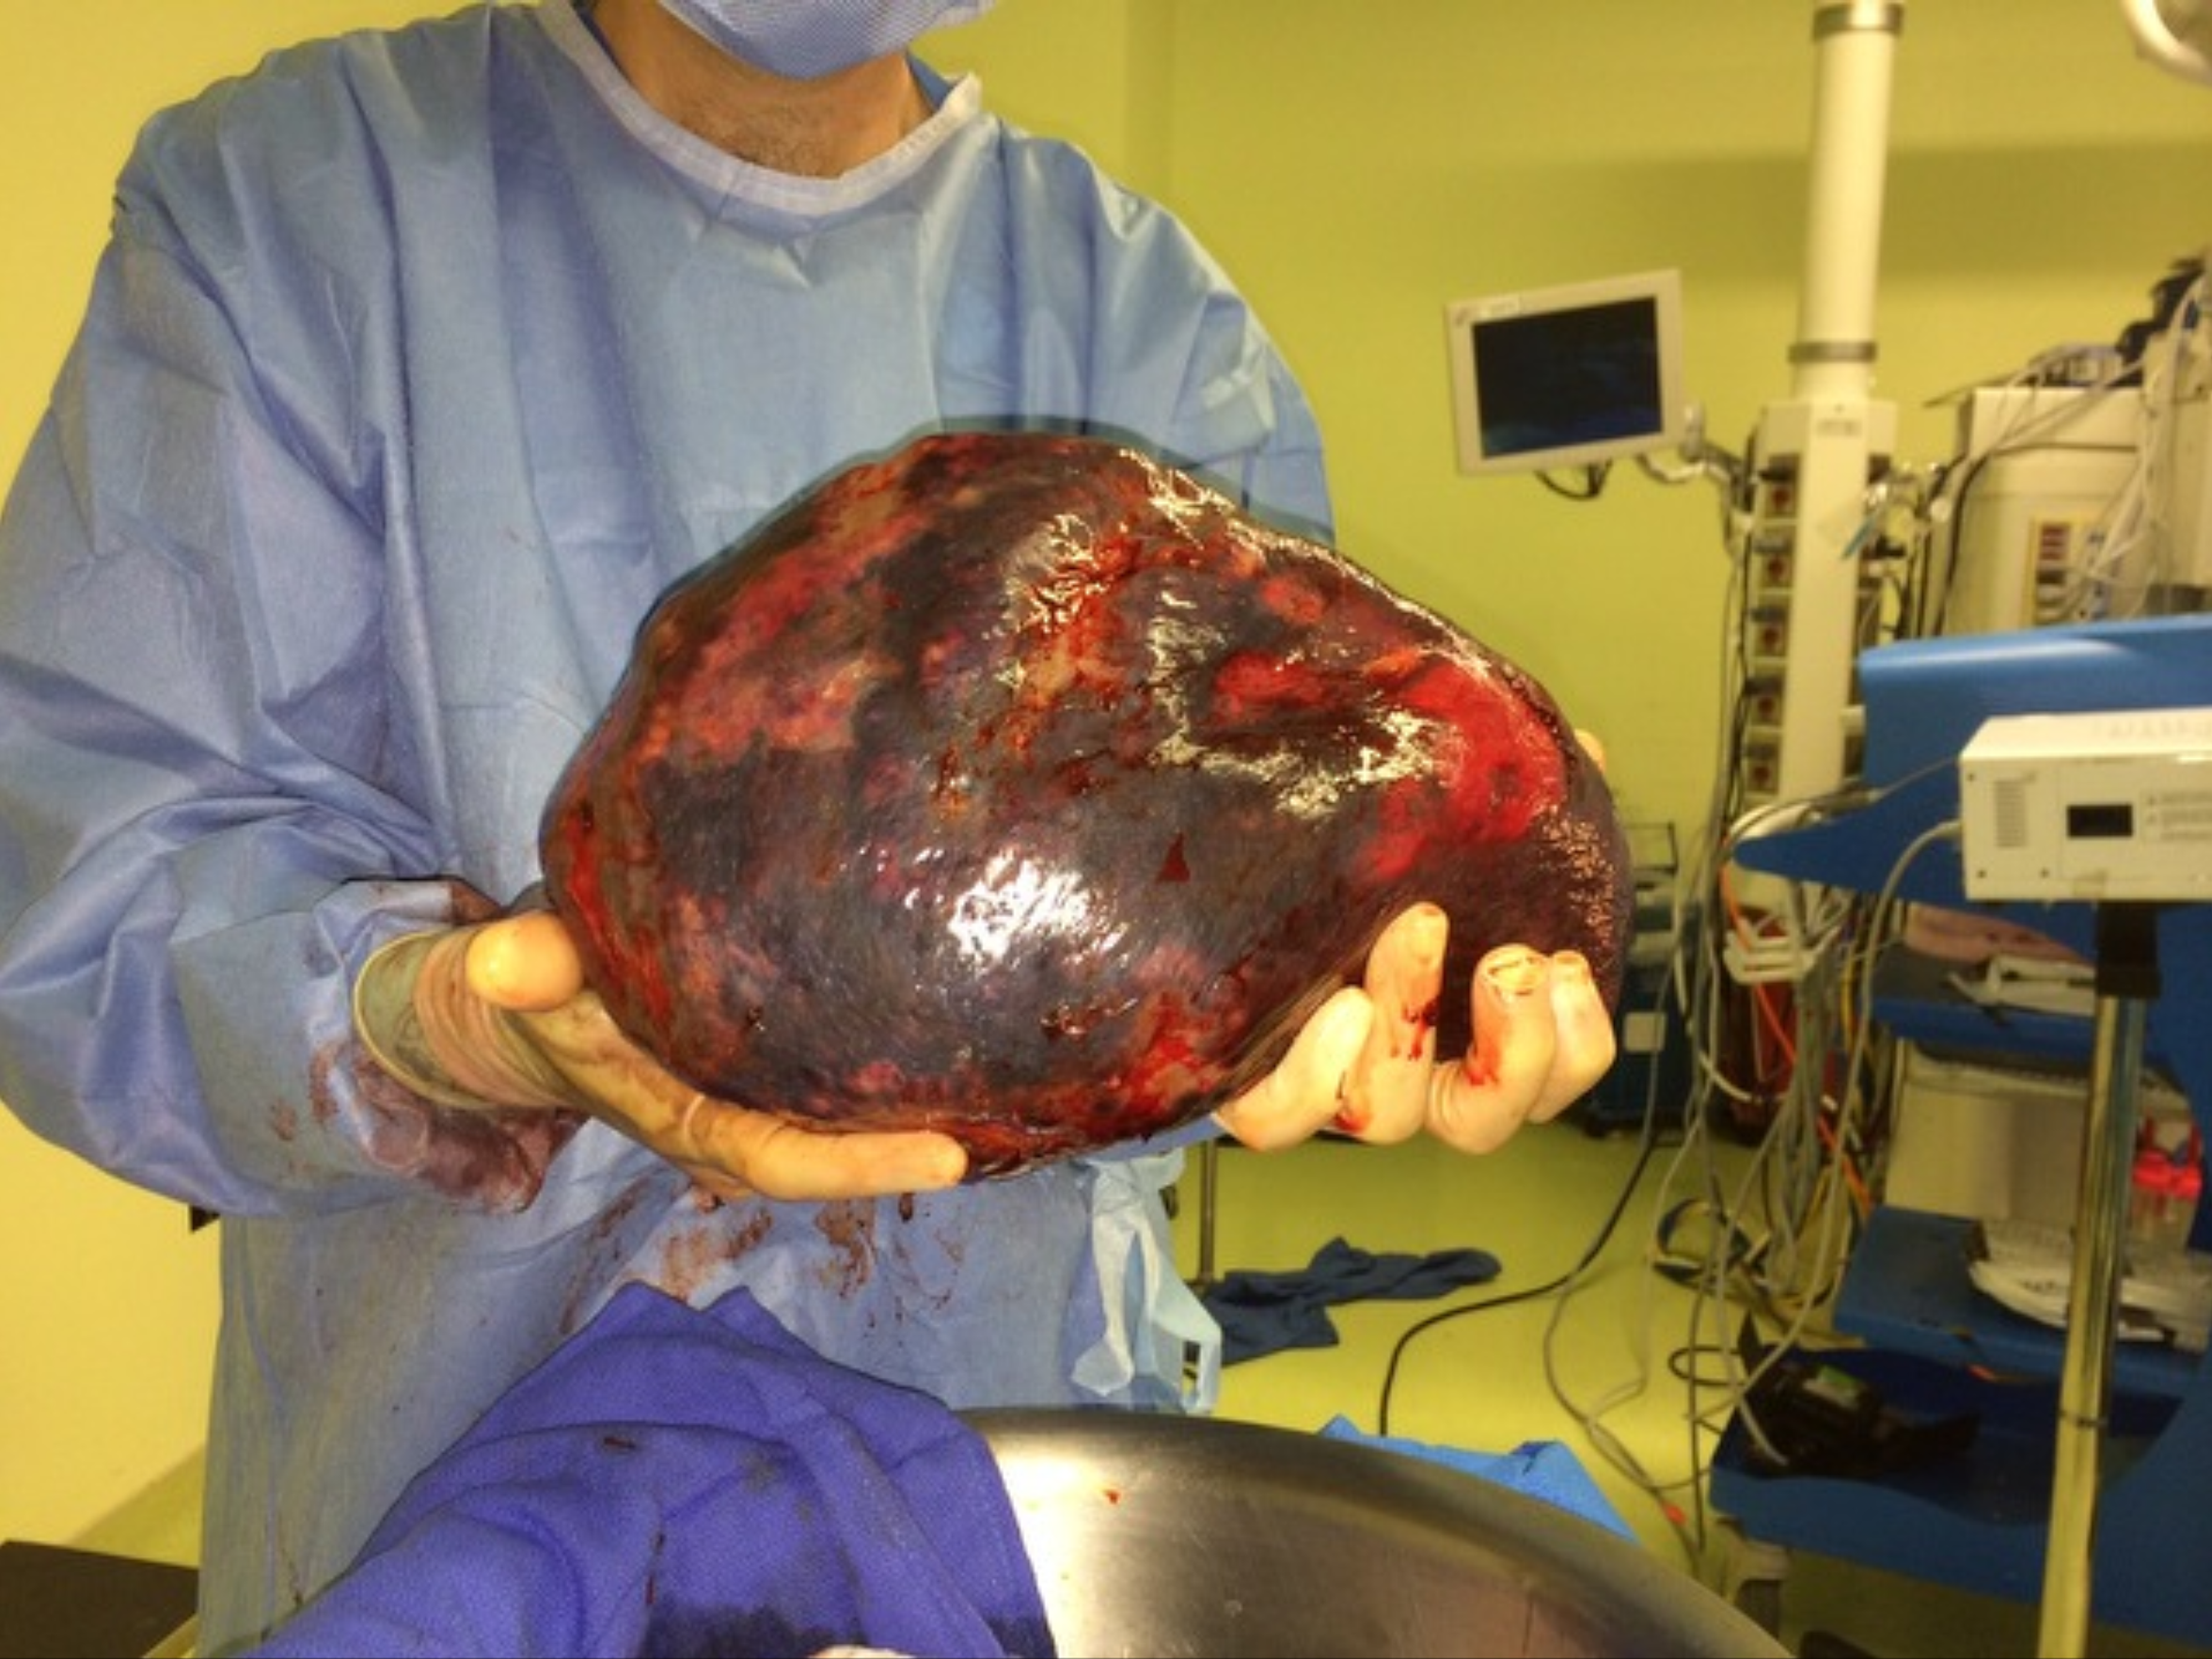 Former Pompton Lakes resident Richard Orefice's spleen shortly after it was removed by surgeons in August 2014. Orefice was diagnosed with hepatosplenic gamma-delta T-cell lymphoma, a rare and aggressive form of cancer. Orefice believes his cancer was caused by DuPont pollution.